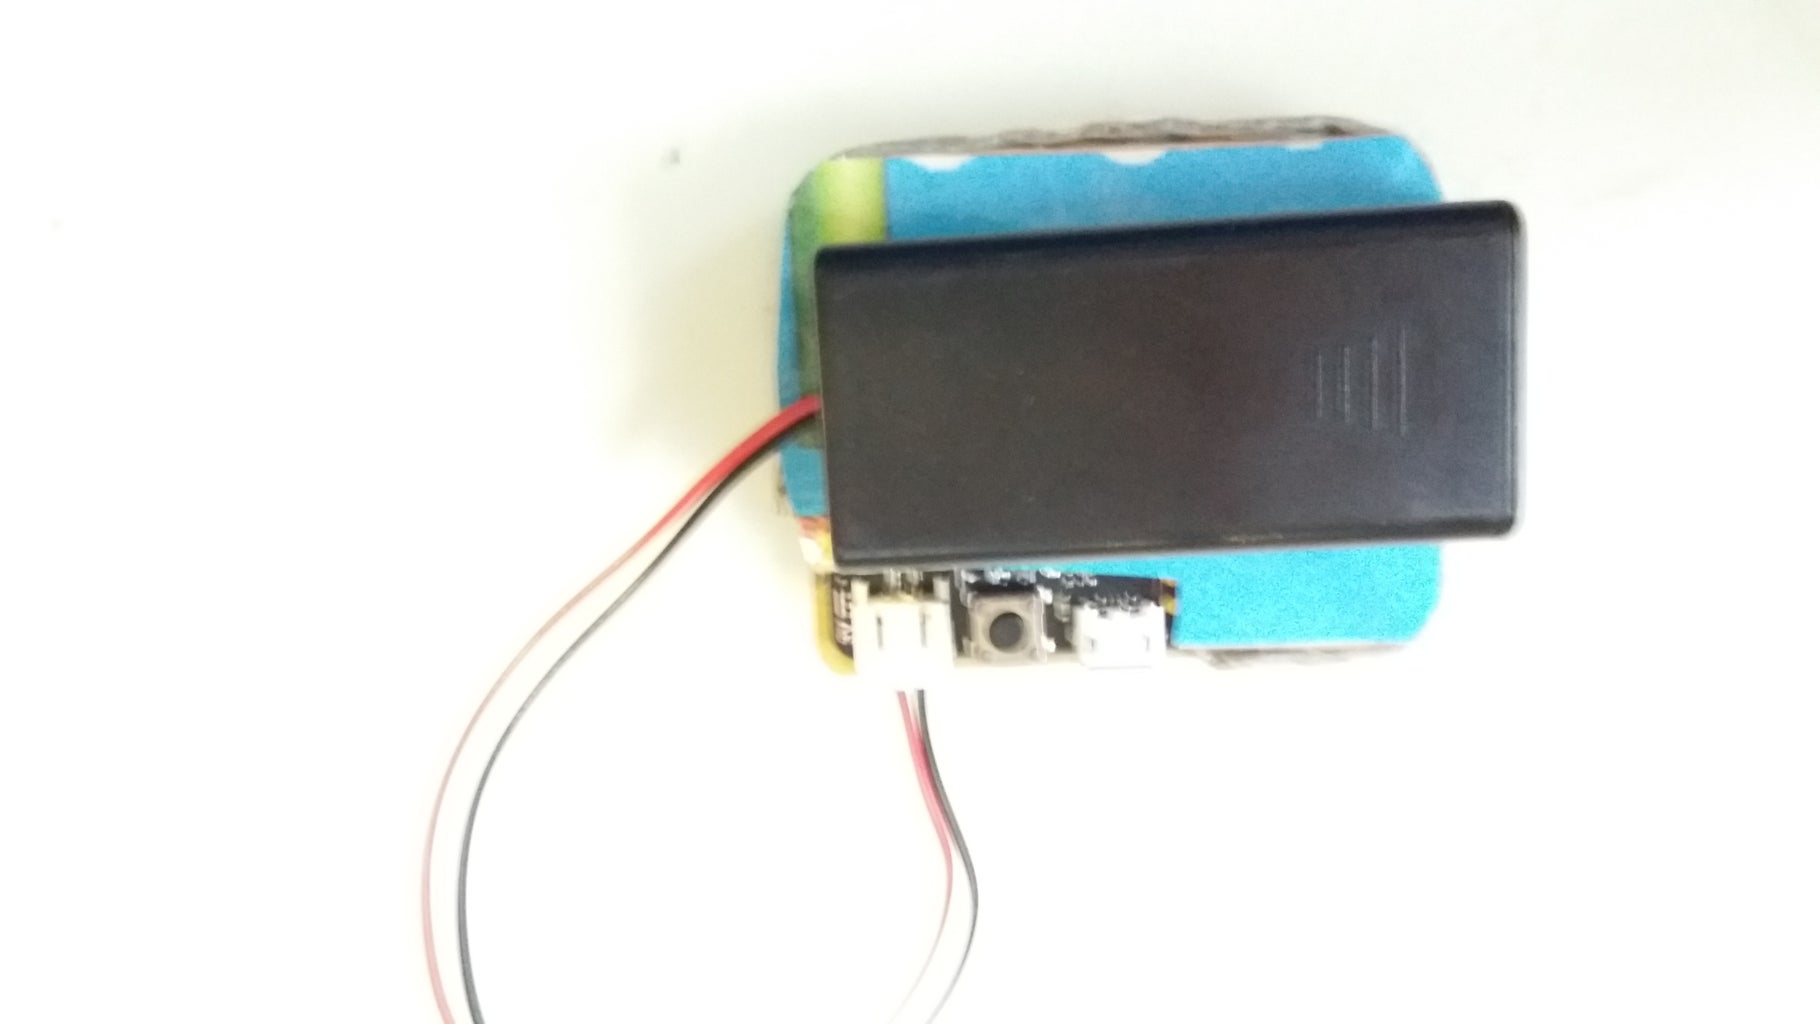 BBC Microbit Flappy Bird Game and Case